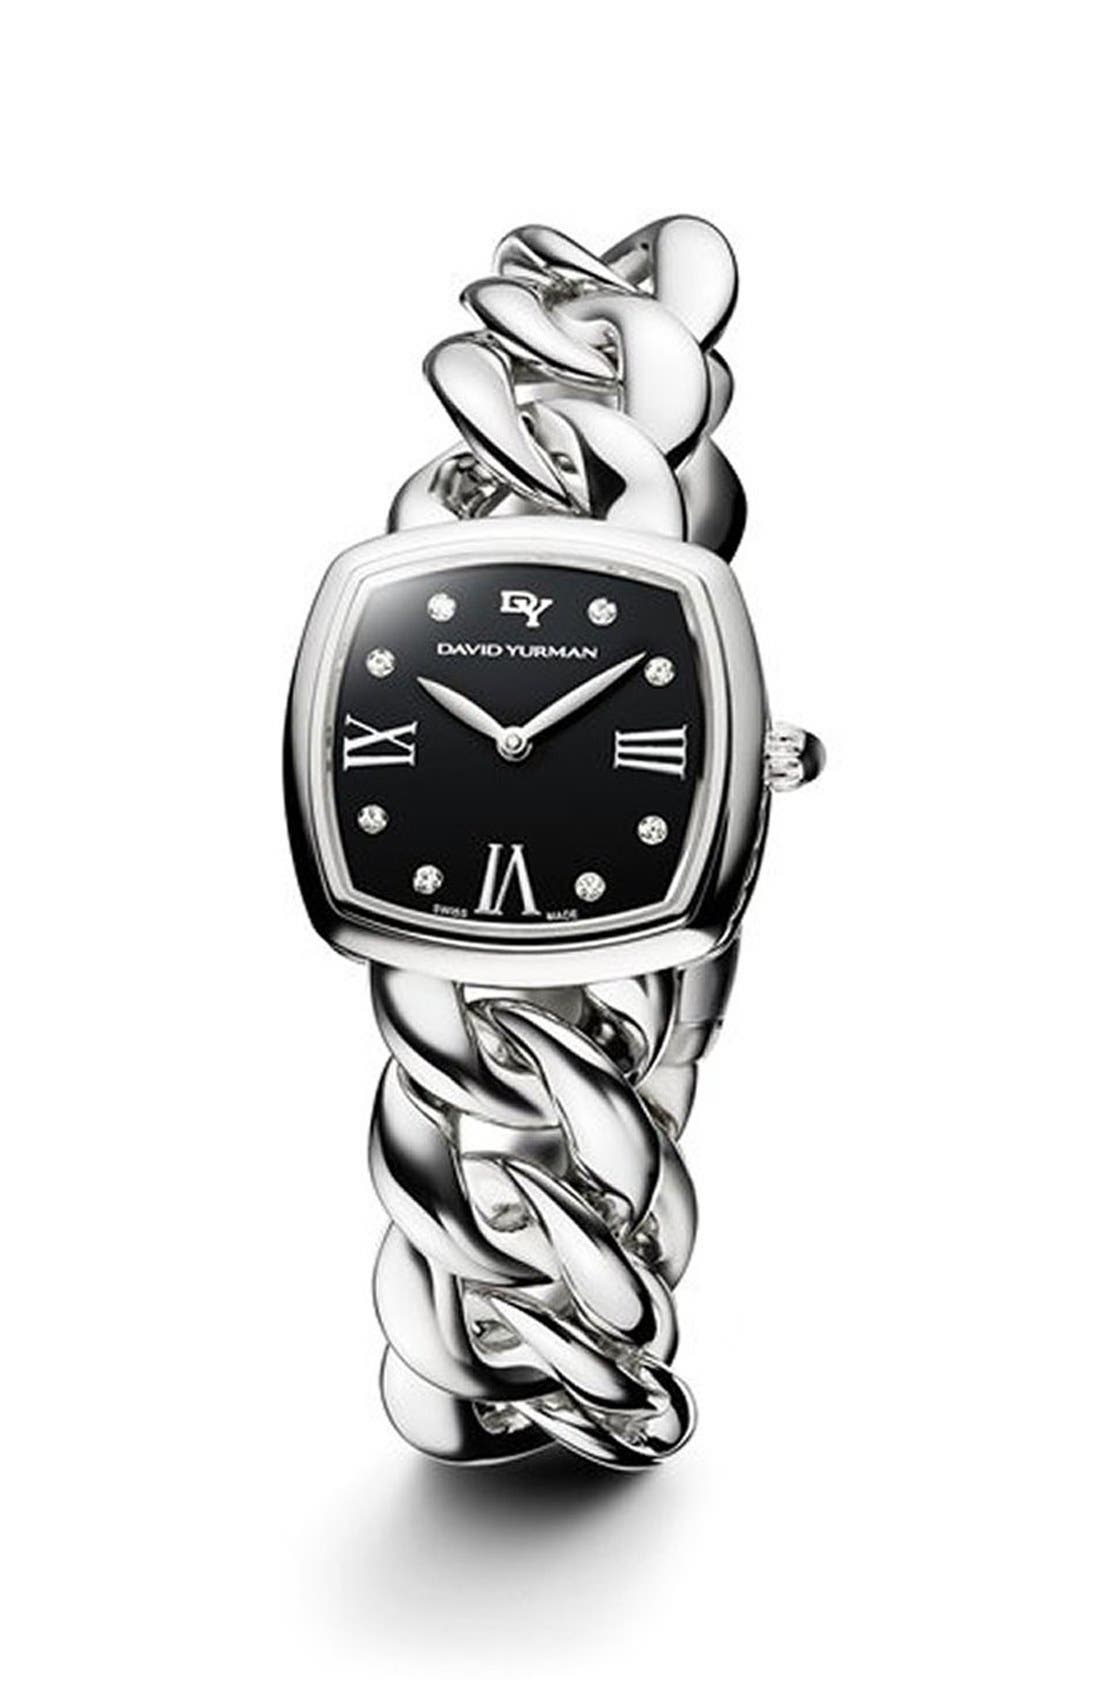 David Yurman 'Albion' 27mm Stainless Steel Quartz Watch with Diamonds